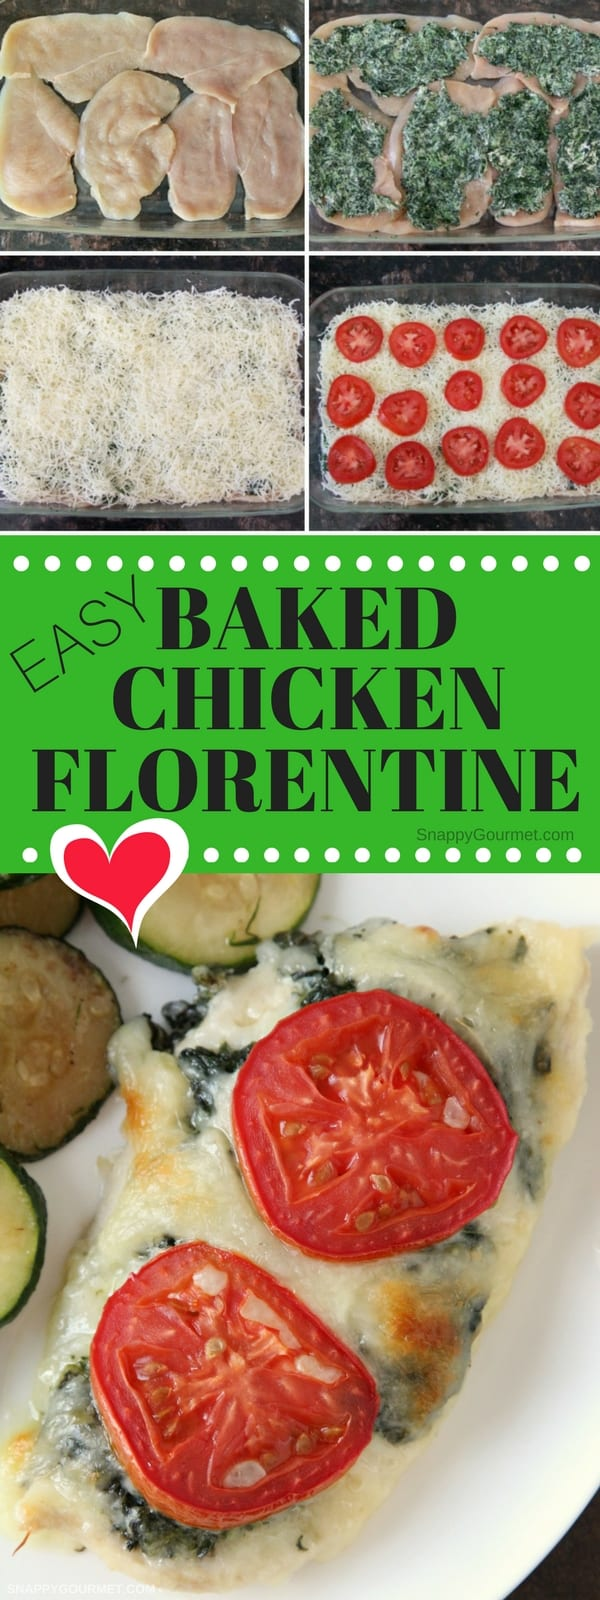 Easy Baked Chicken Florentine Recipe - low carb baked chicken recipe with boneless chicken breasts, spinach, cheese, and ranch seasoning. #Chicken #LowCarb #Spinach #SnappyGourmet